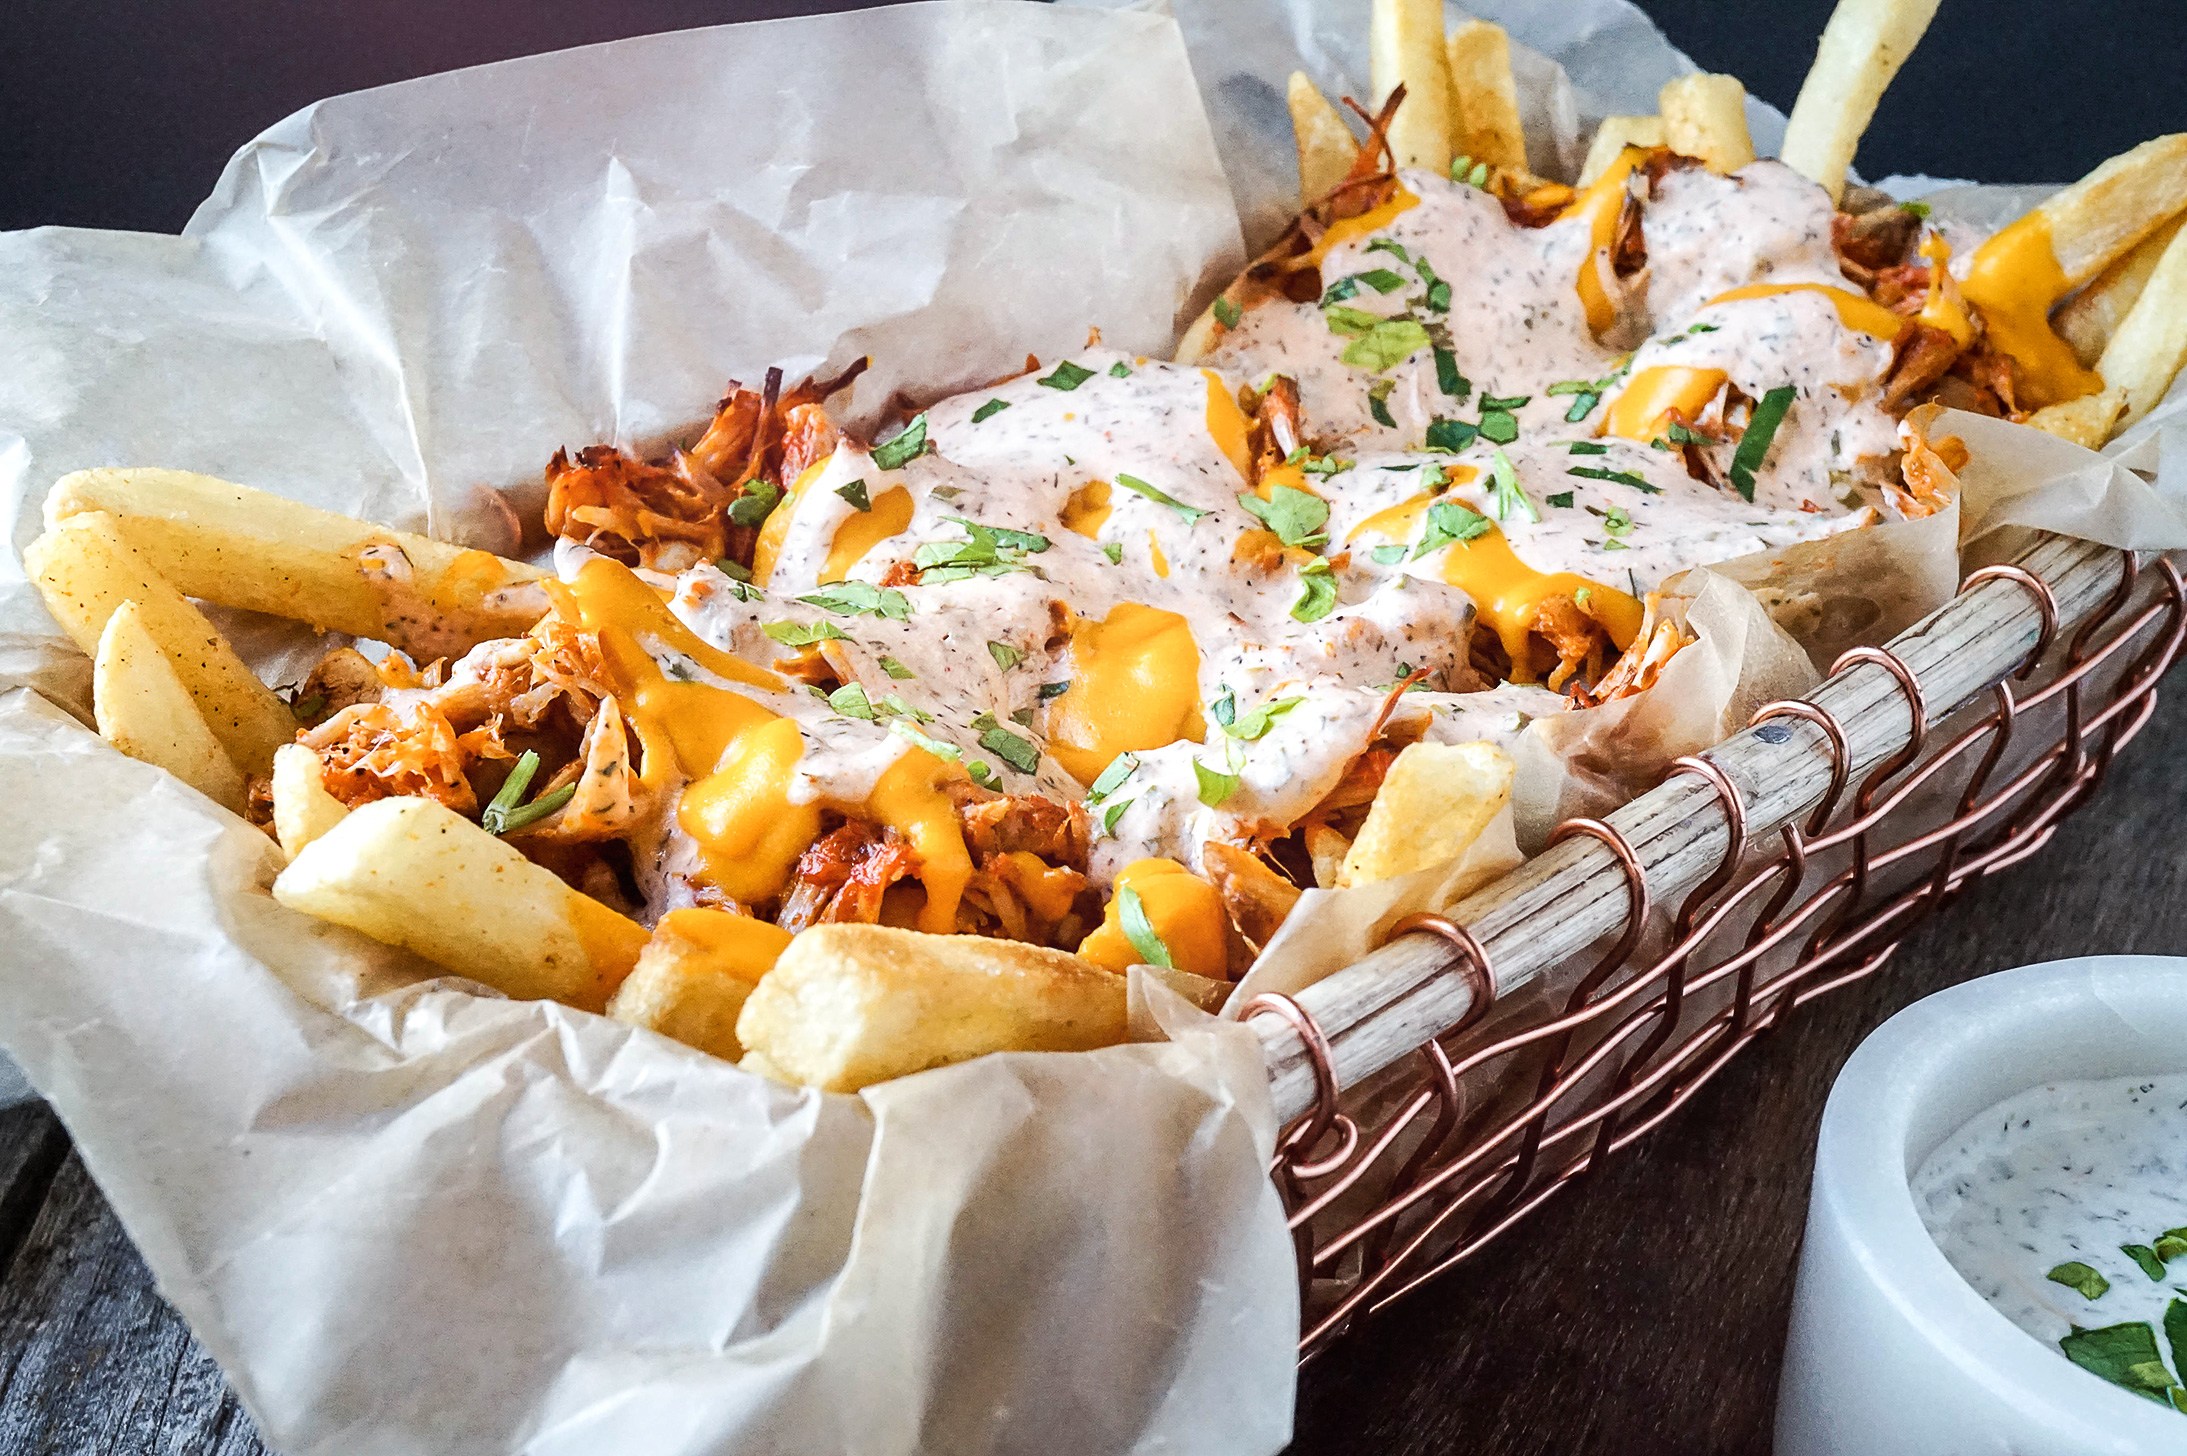 buffalo-ranch-jackfruit-poutine-002.jpg